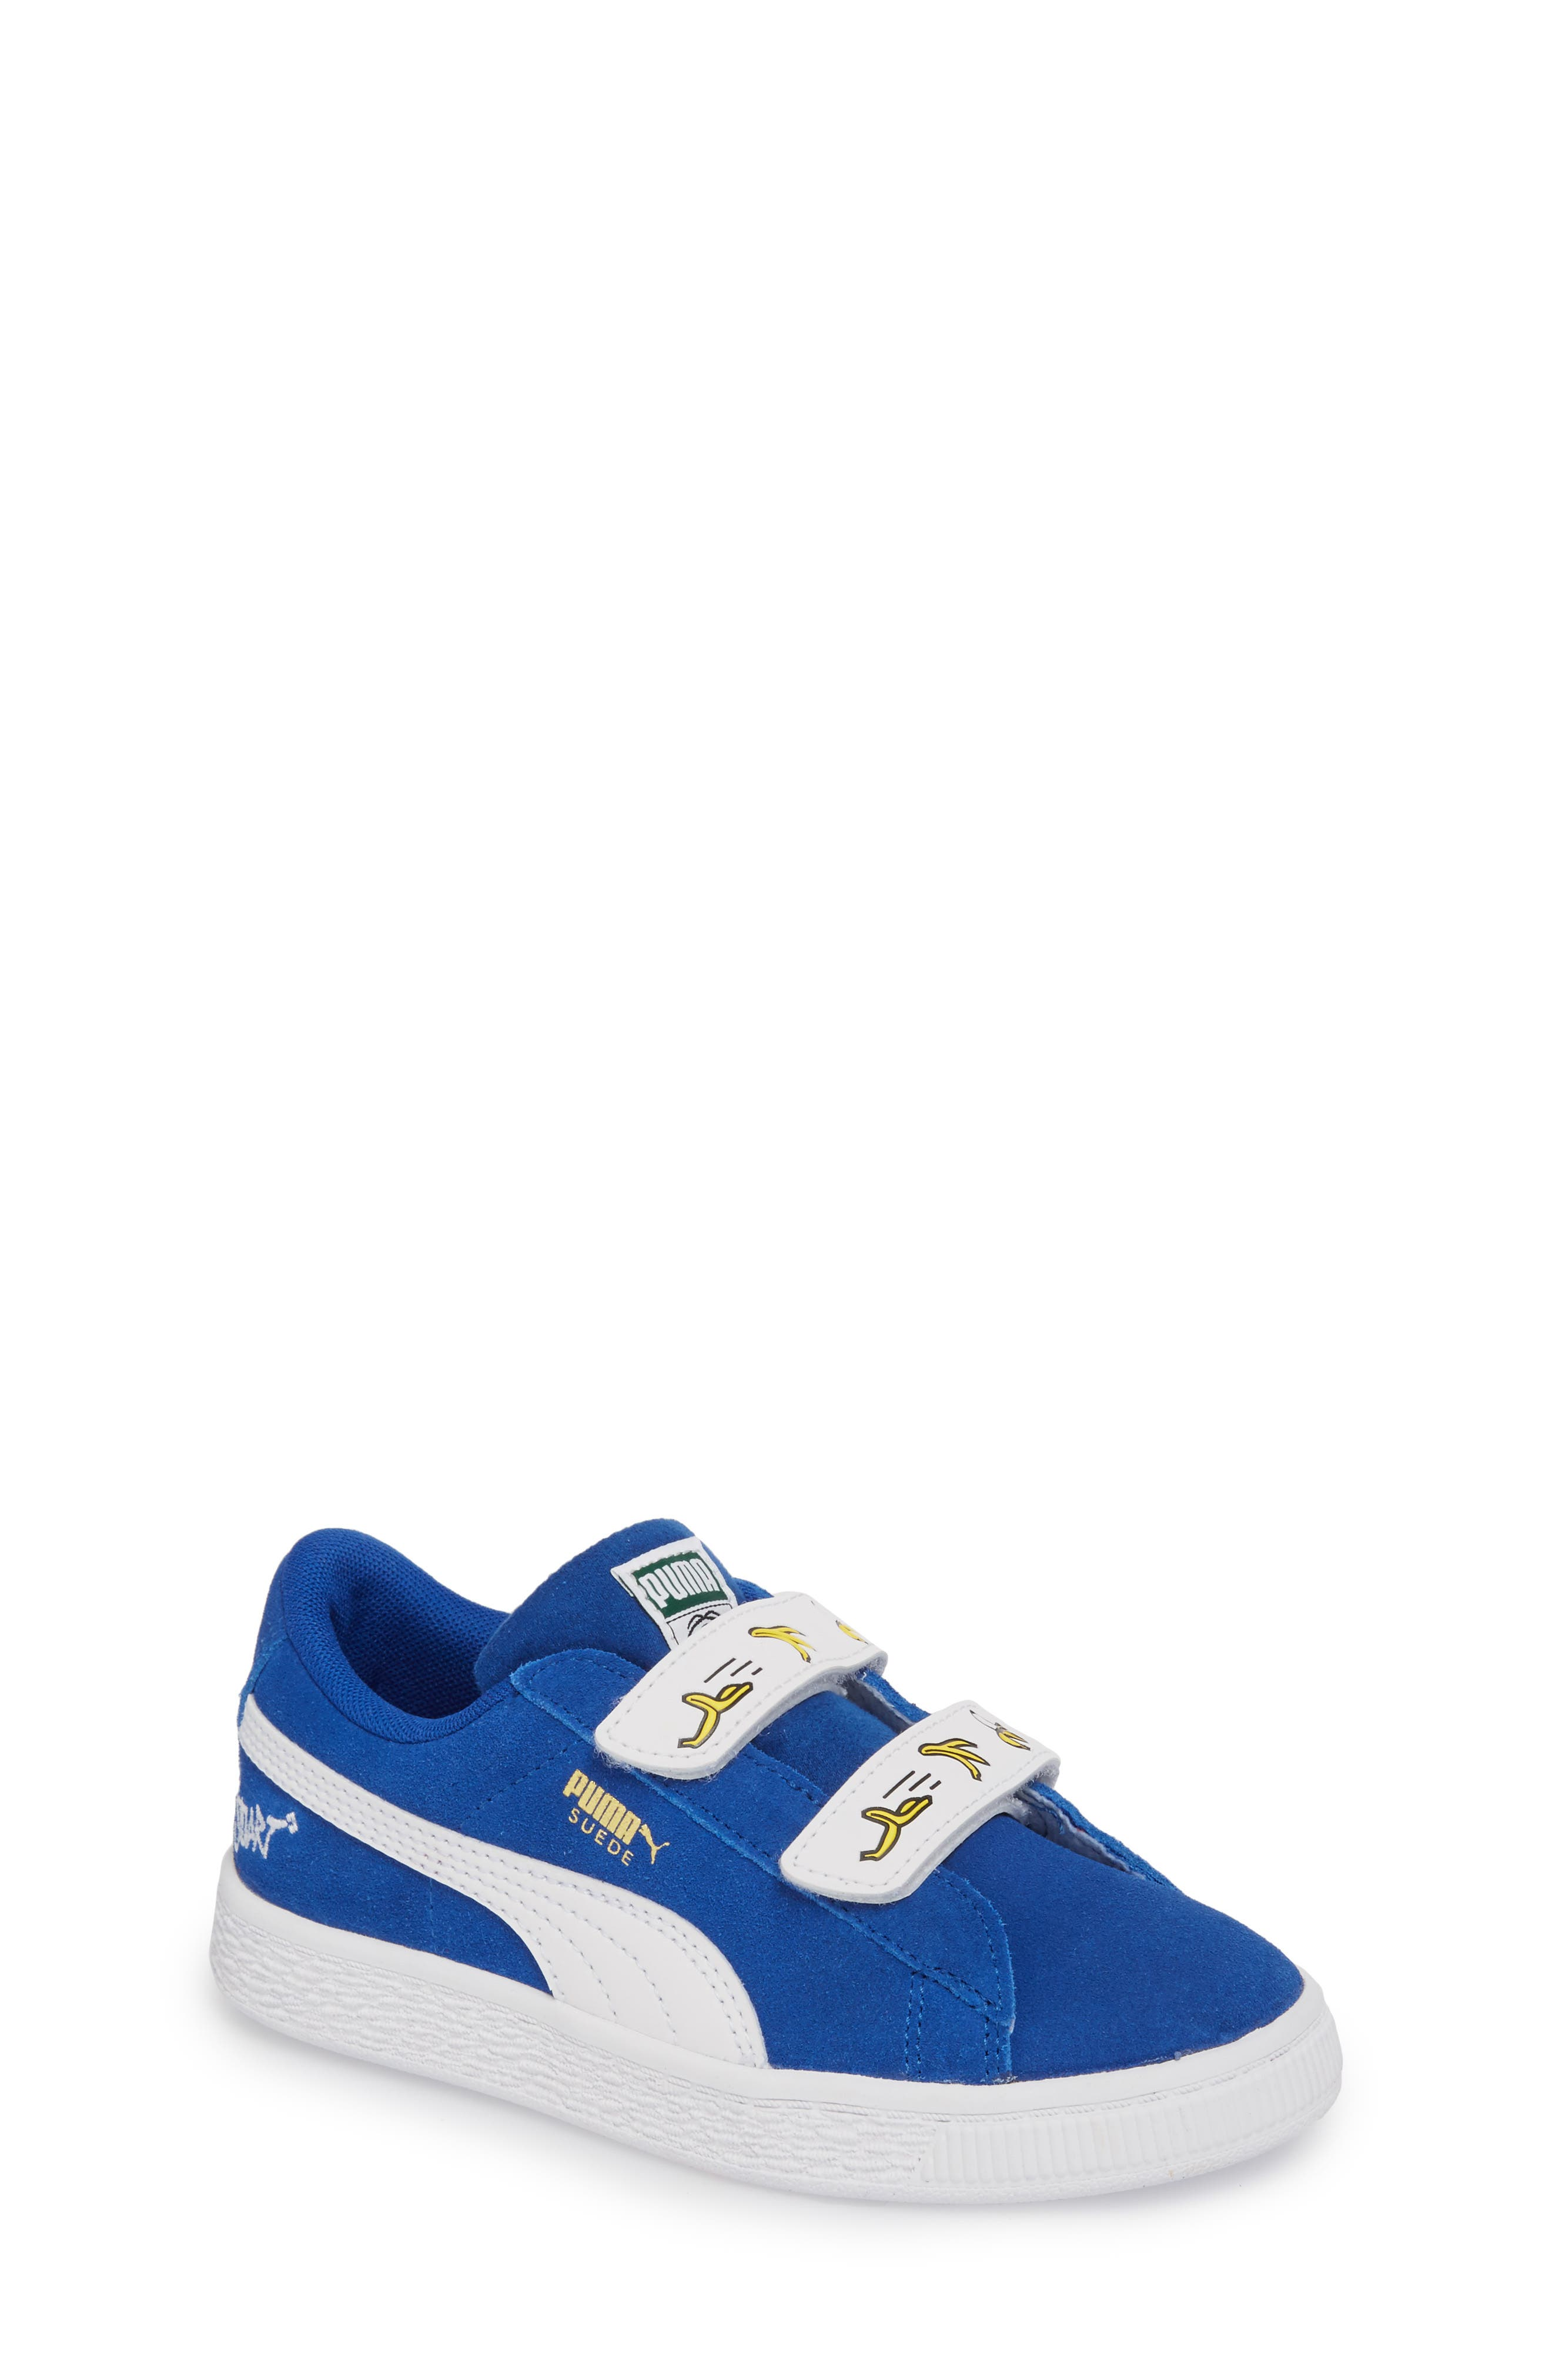 PUMA x Minions Suede V Sneaker (Baby, Walker, Toddler, Little Kid & Big Kid)